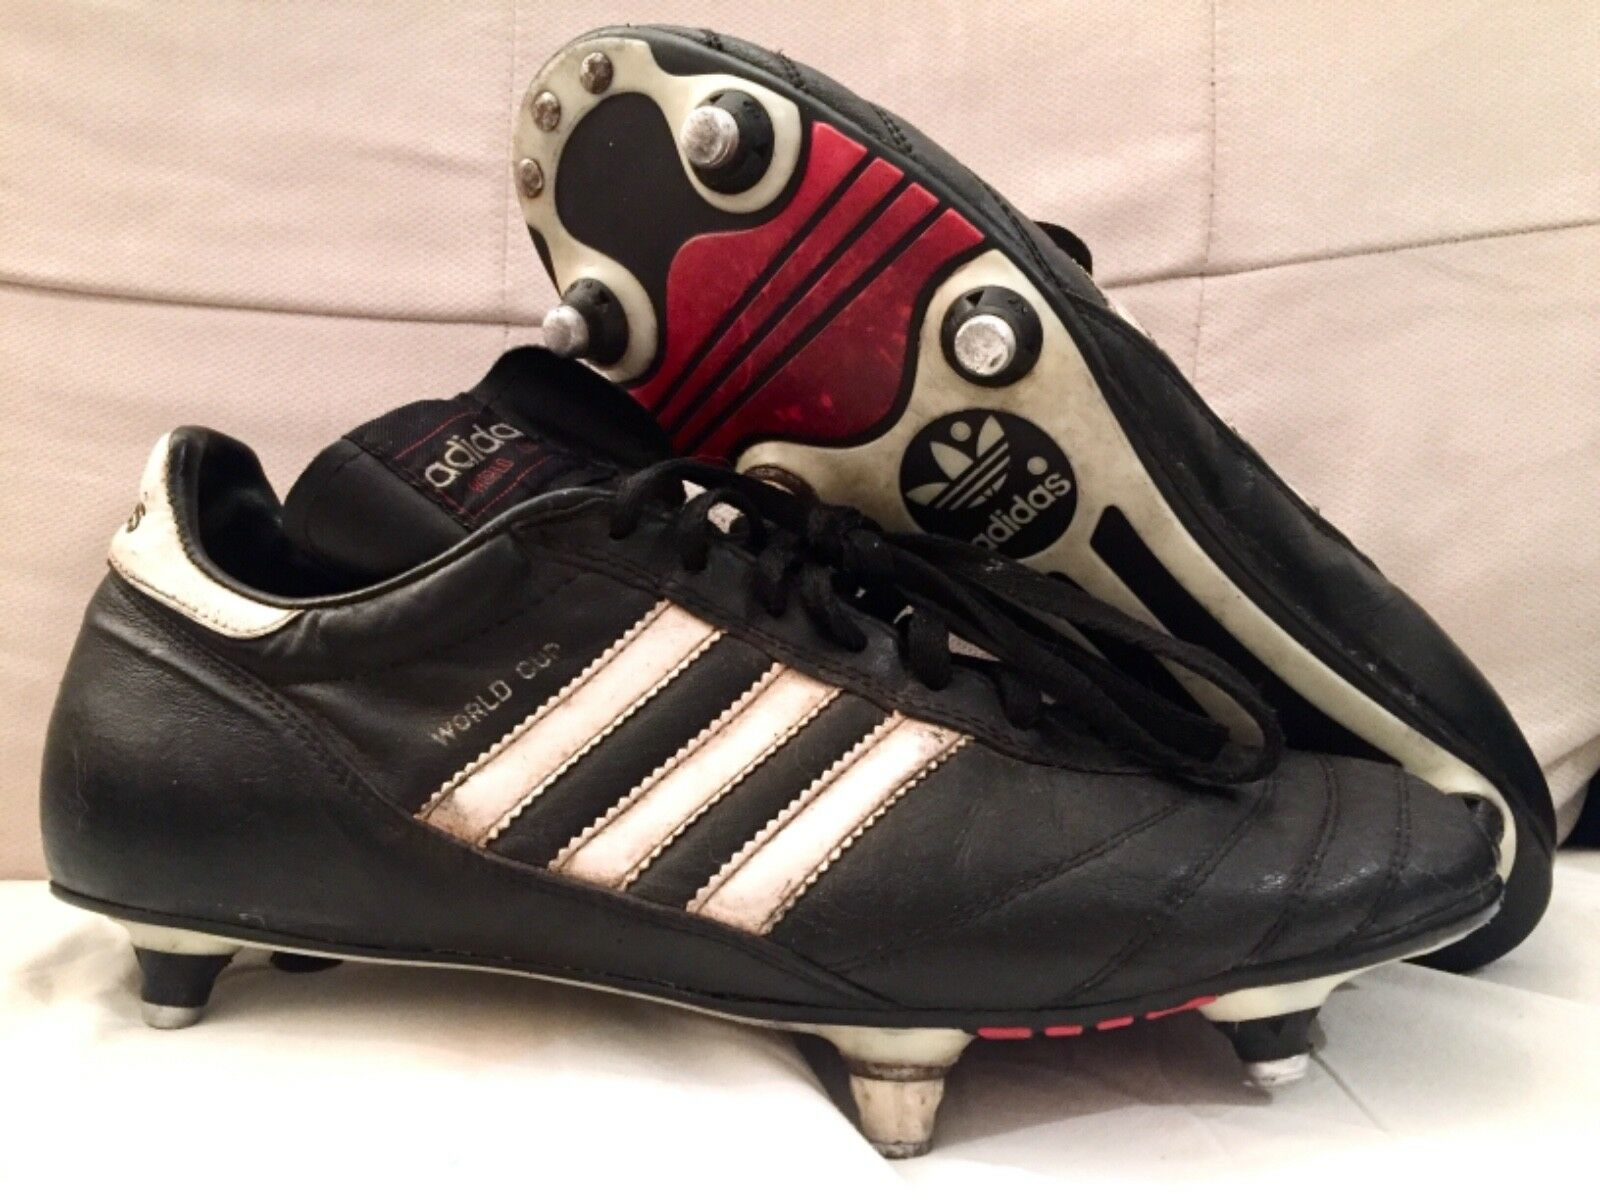 Adidas World Cup SF Soccer cleats football boots US10 copa mundial